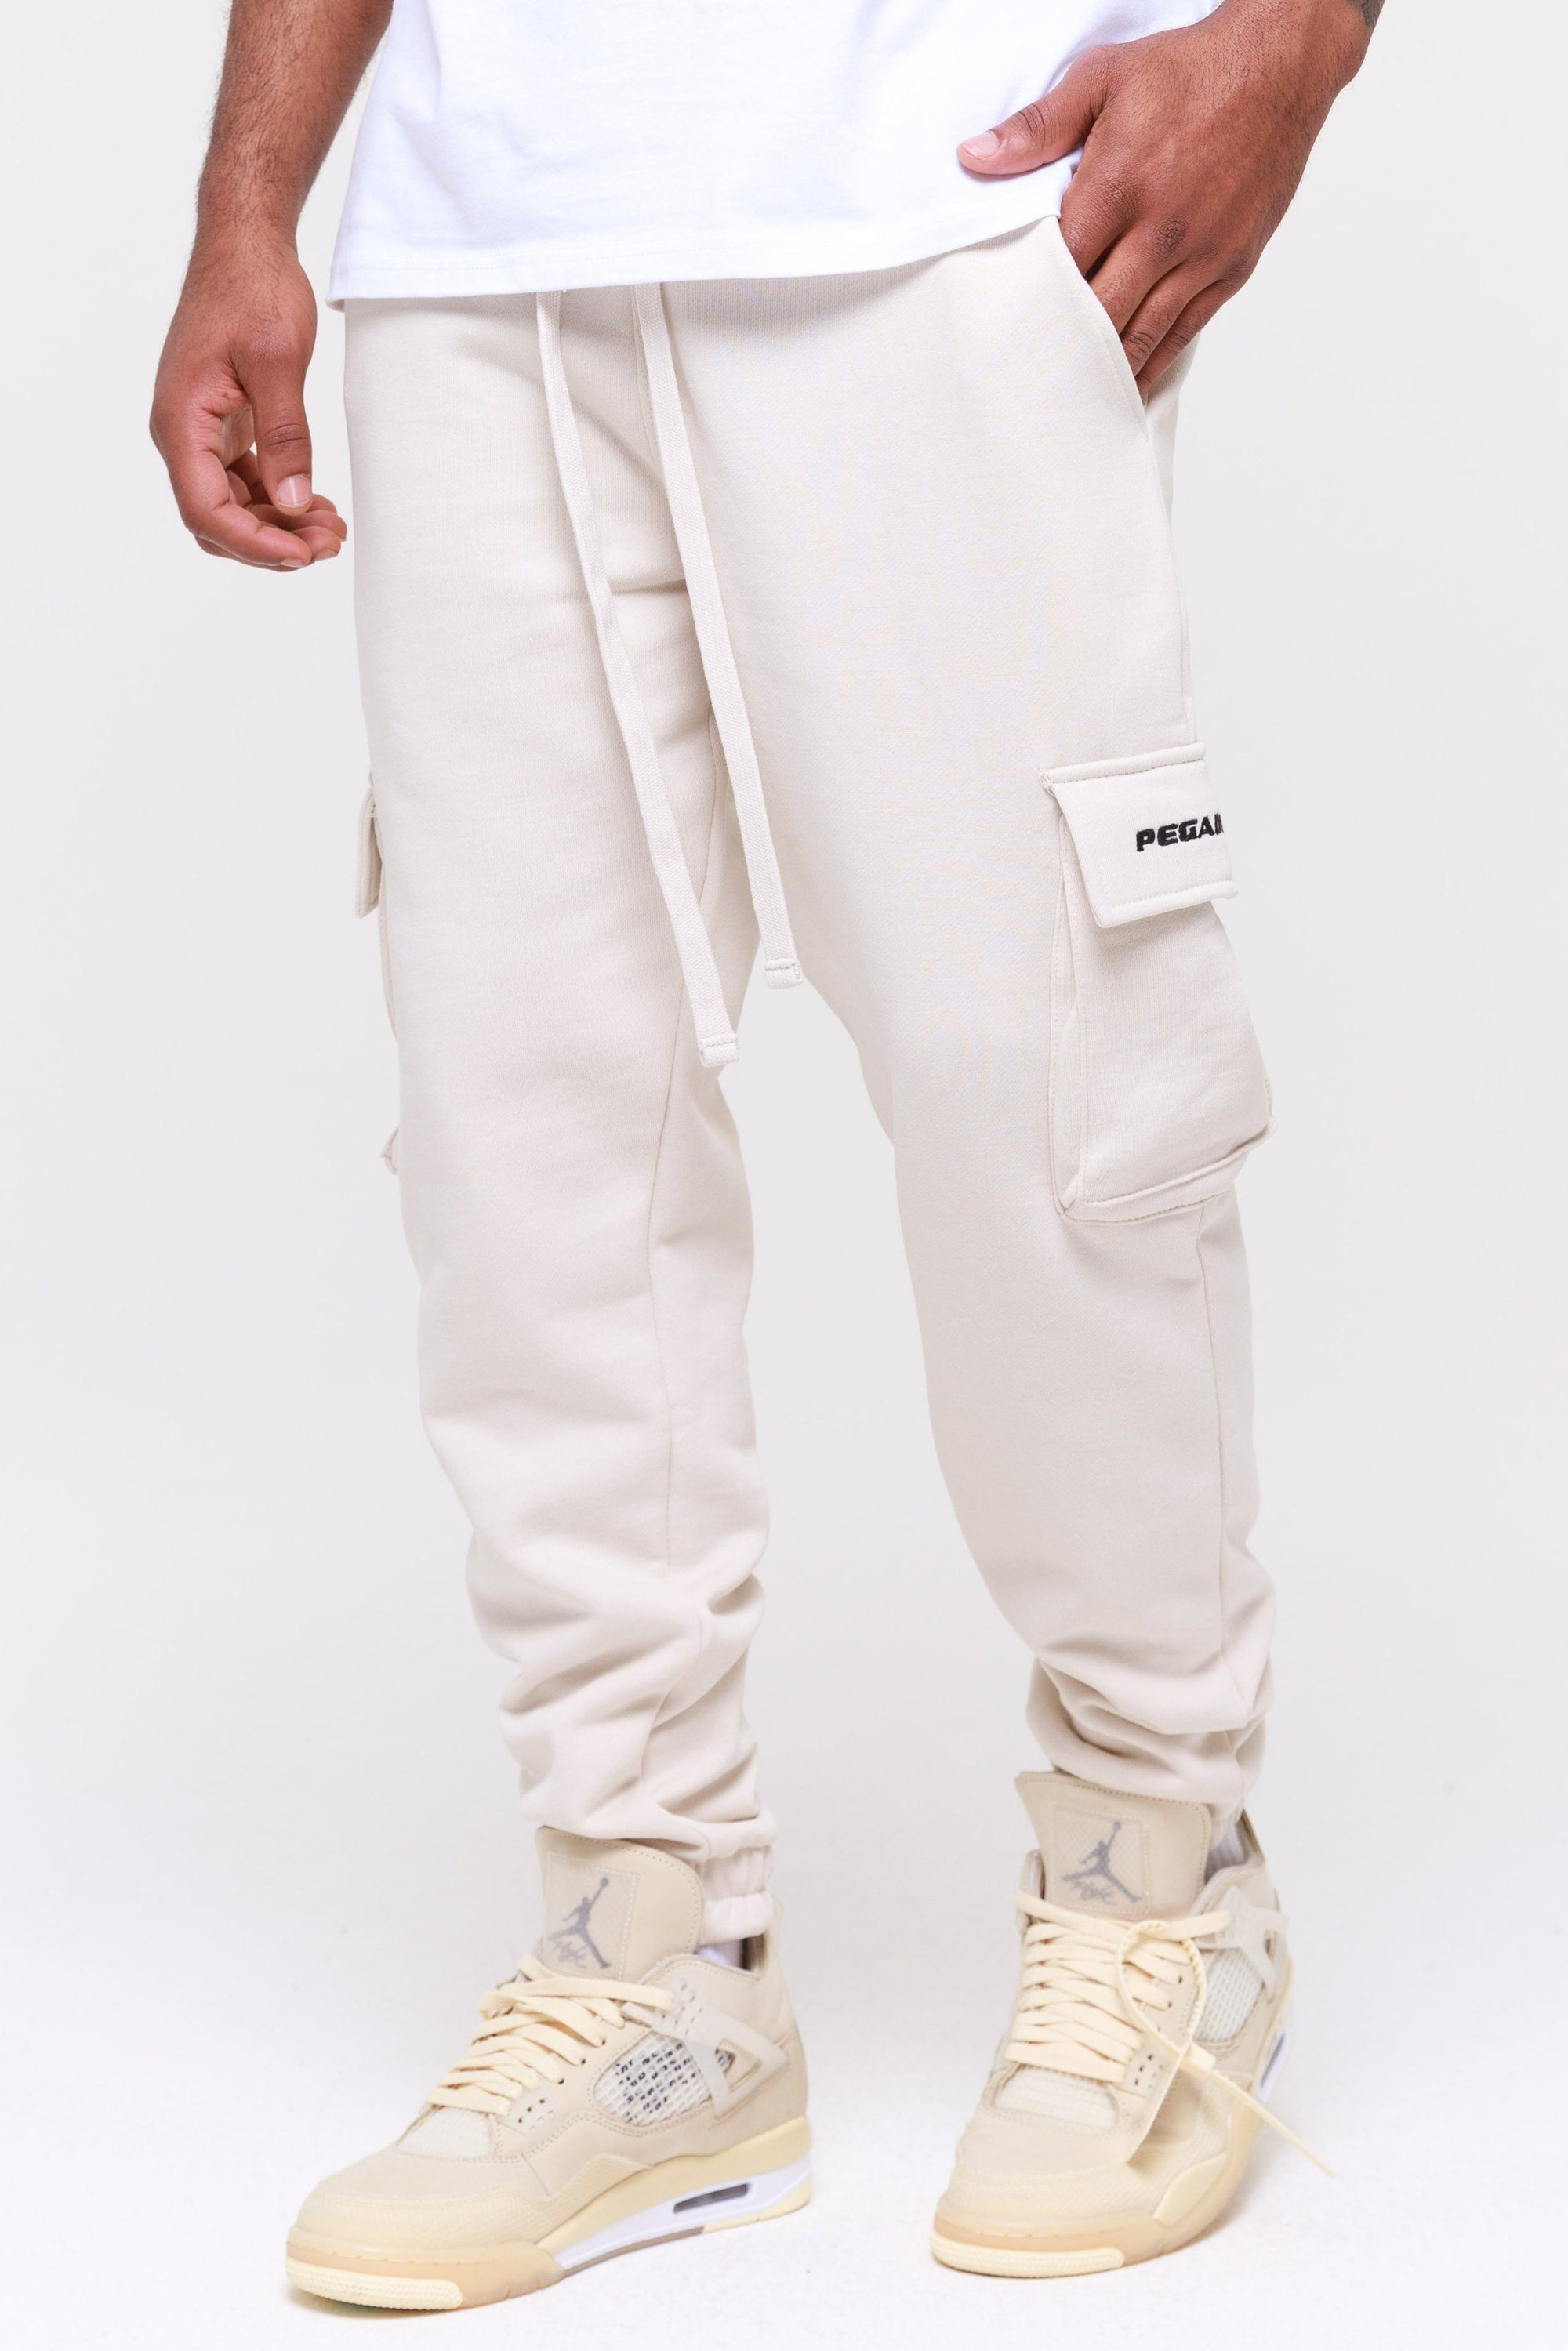 Idaho Heavy Utility Sweatpants Coconut Milk Pants Wild Society